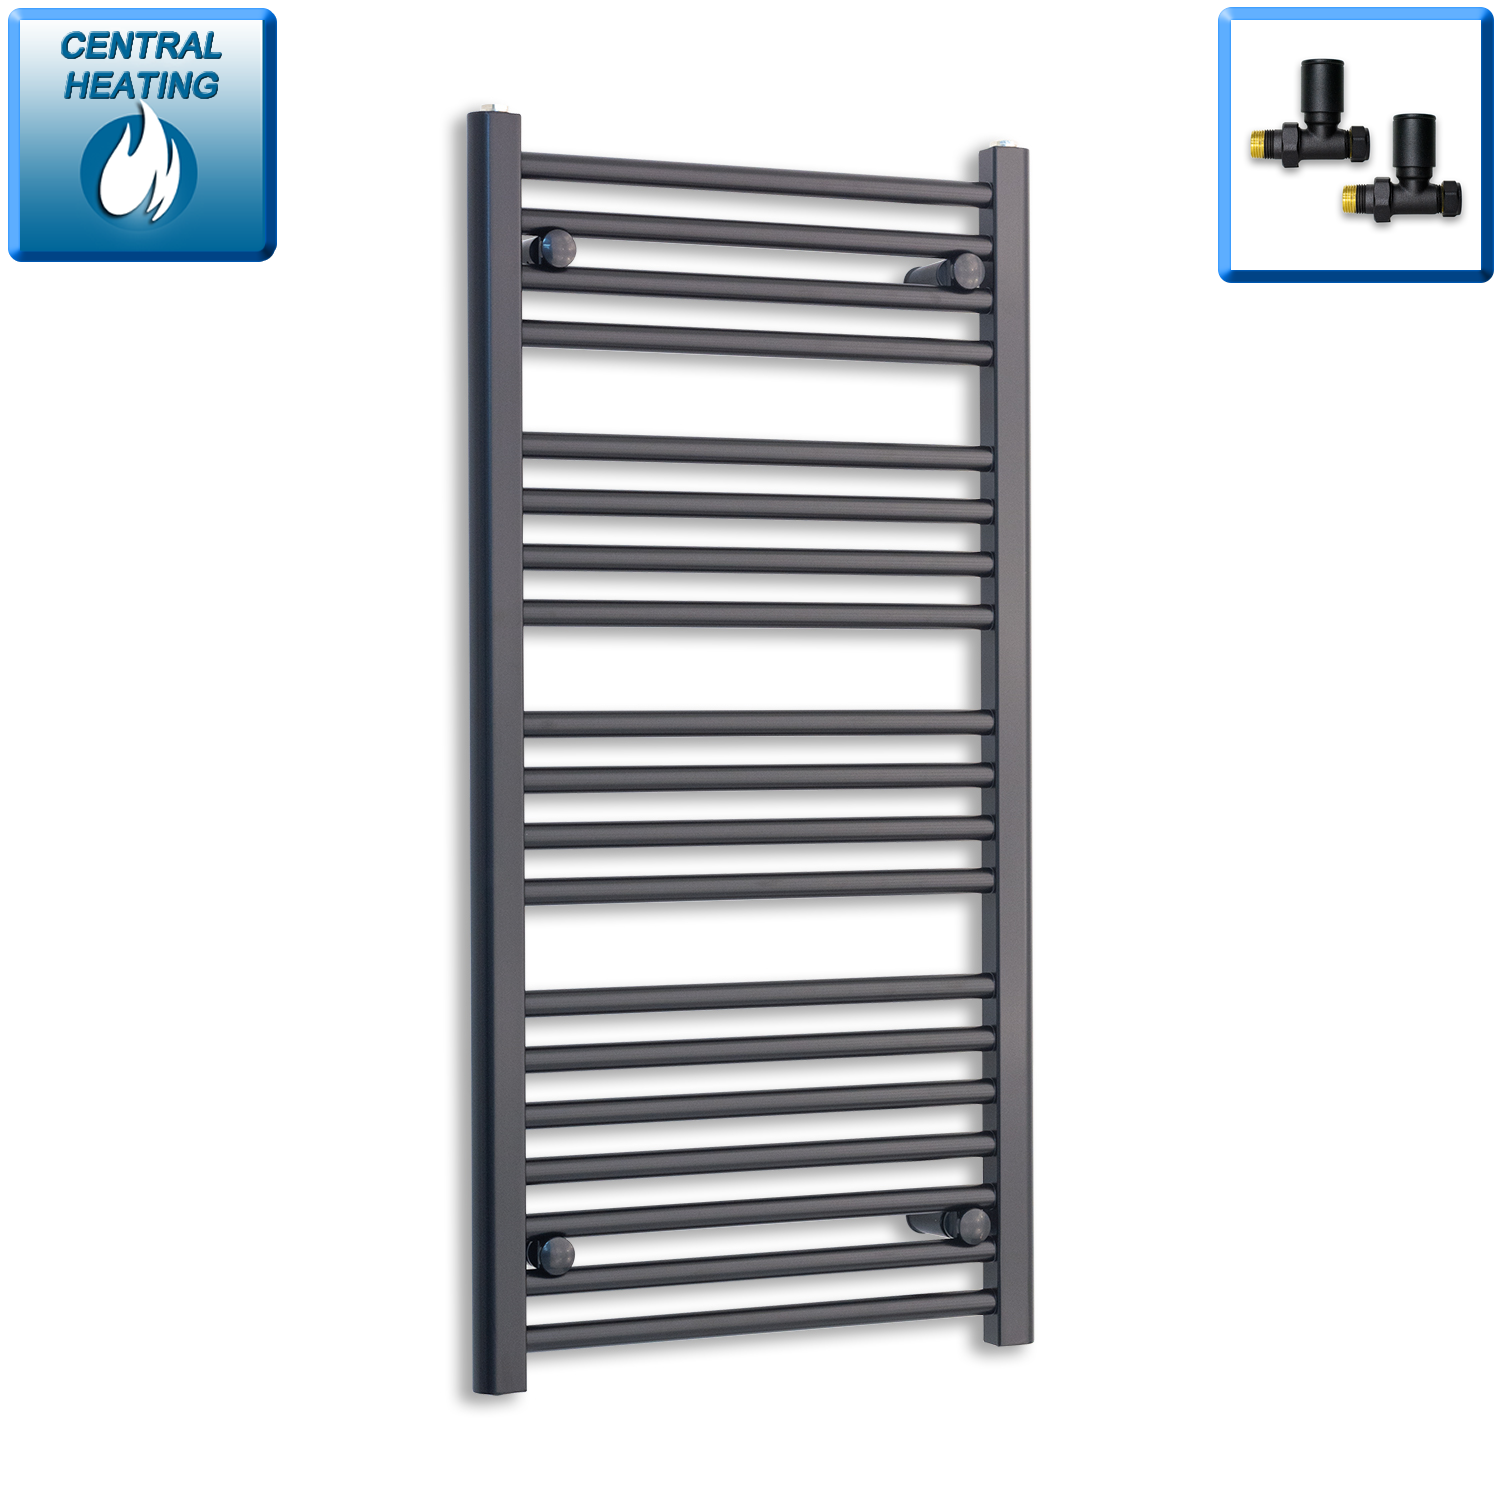 600mm Wide 1000mm High Black Towel Rail Radiator With Straight Valve